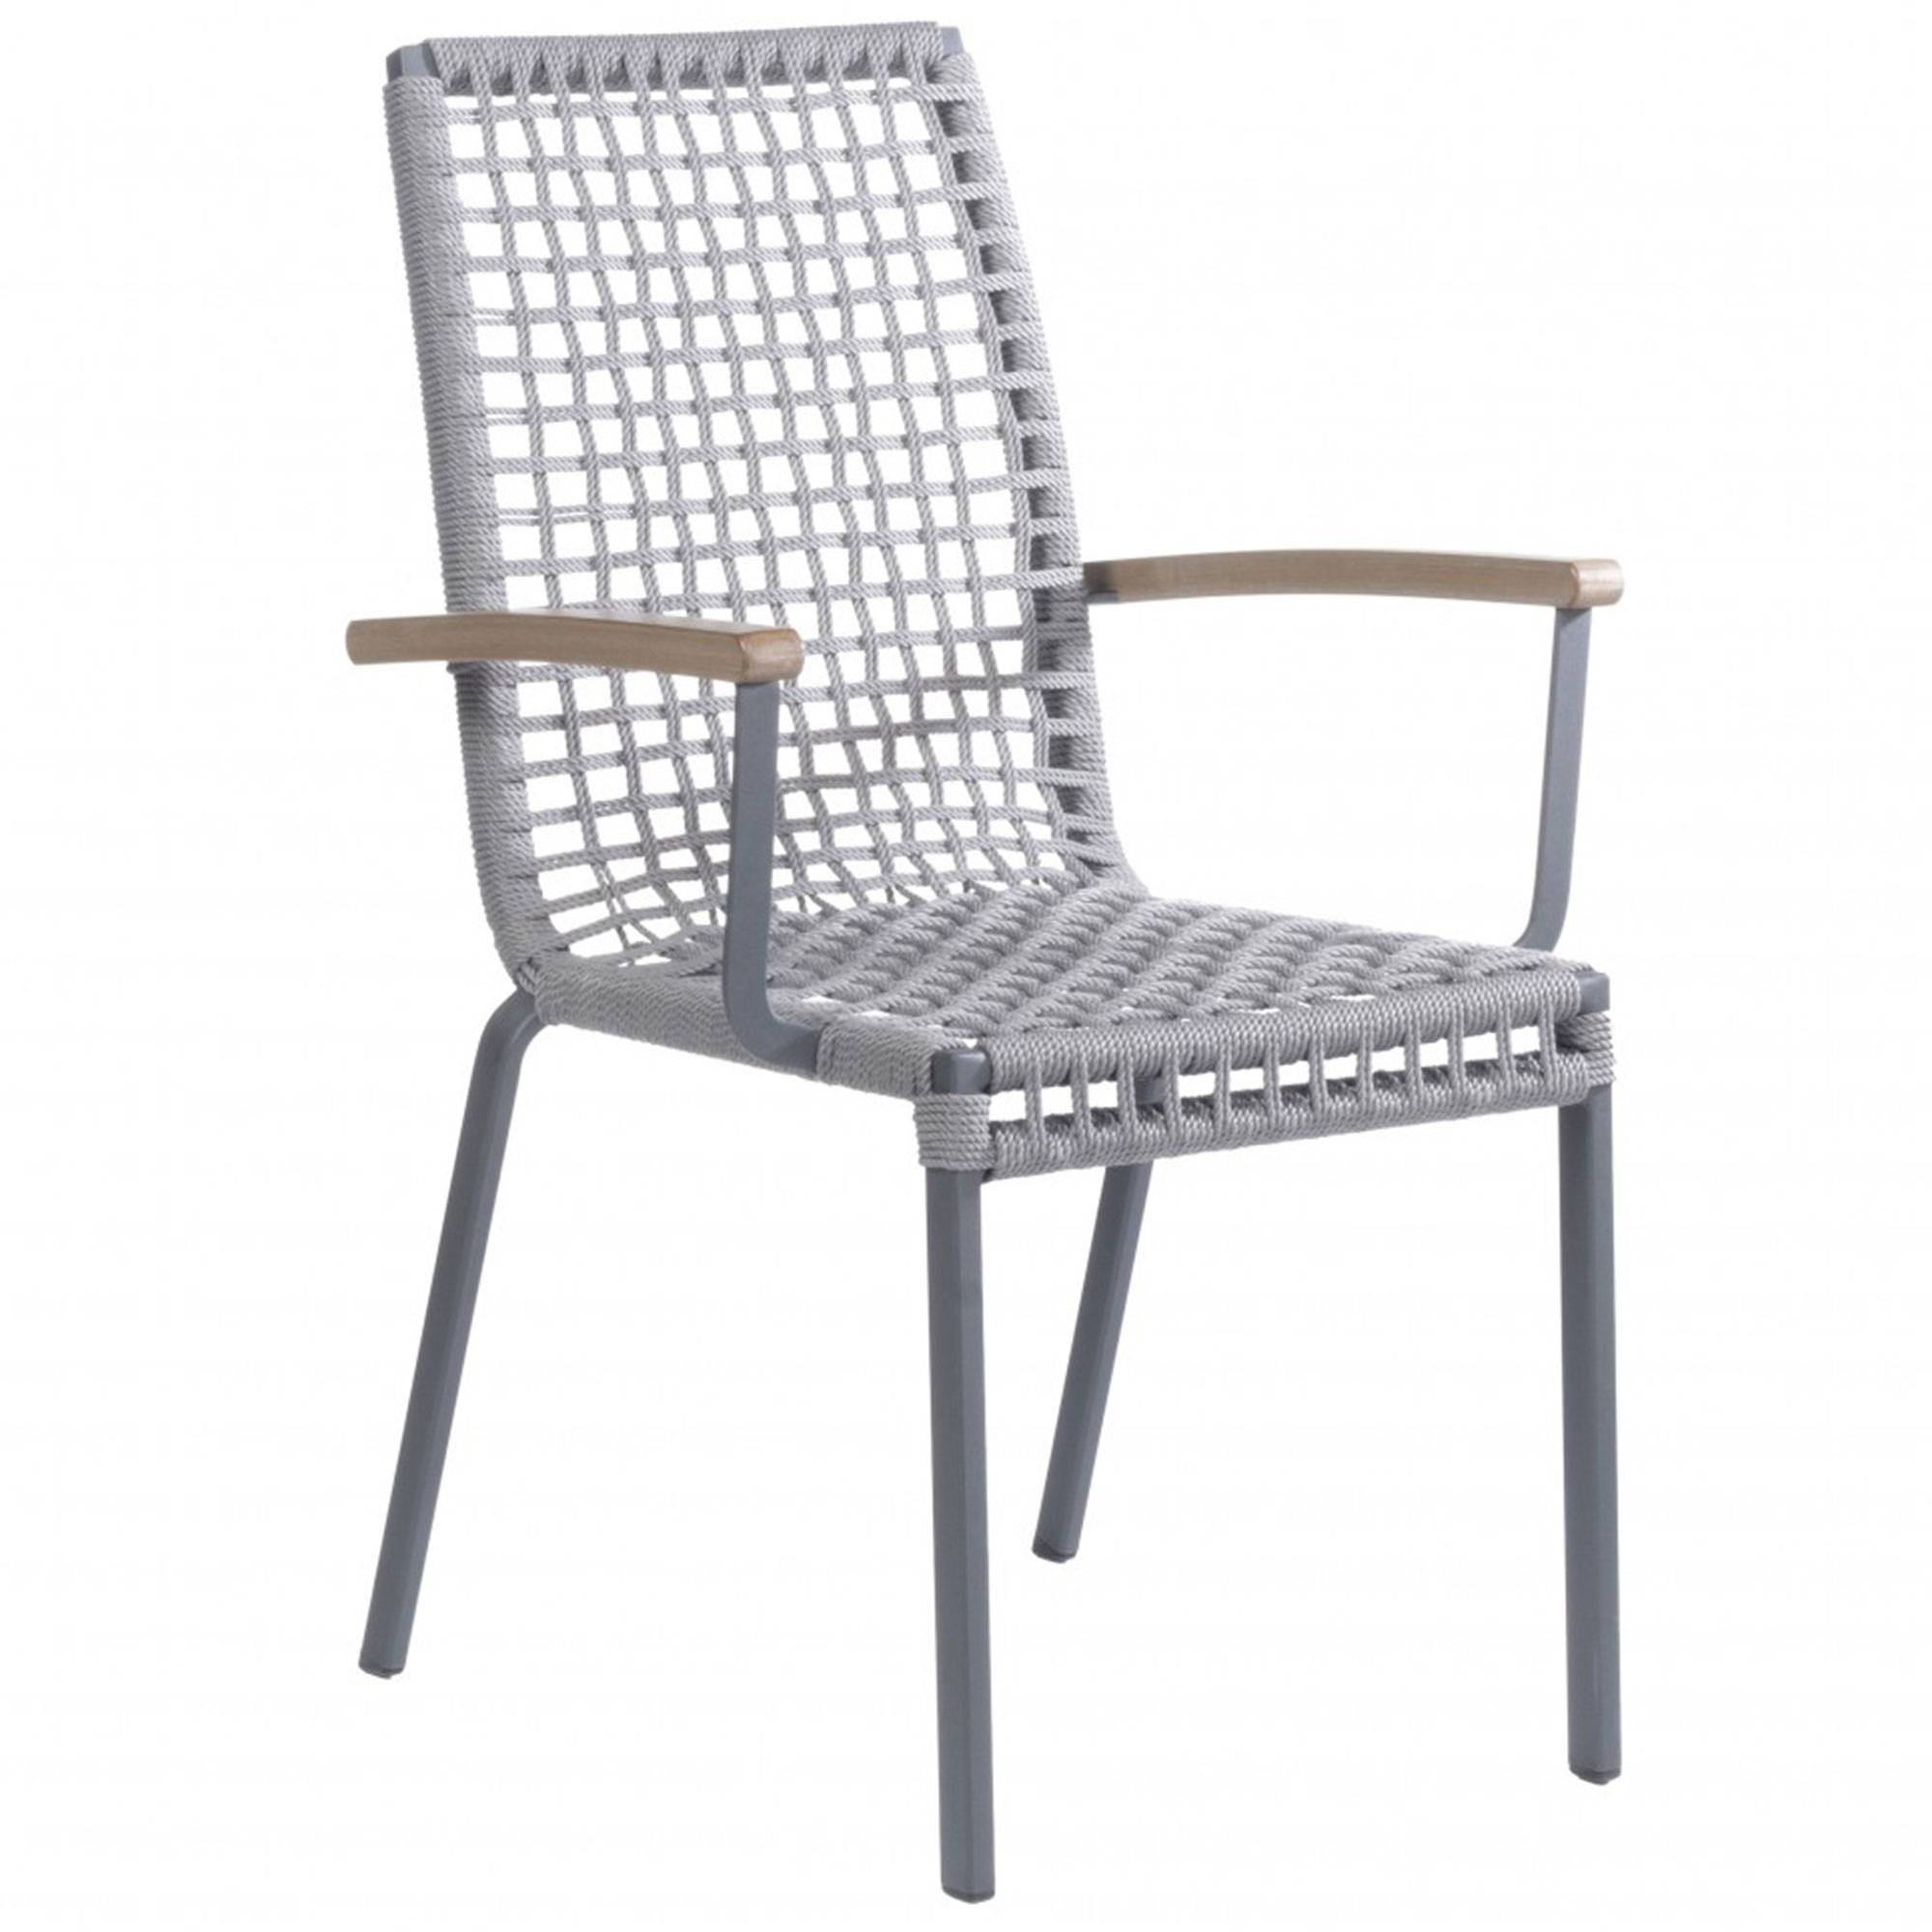 Alfresco Home Penelope Stackable Rope Dining Chair  - Aluminum - Size: One Size